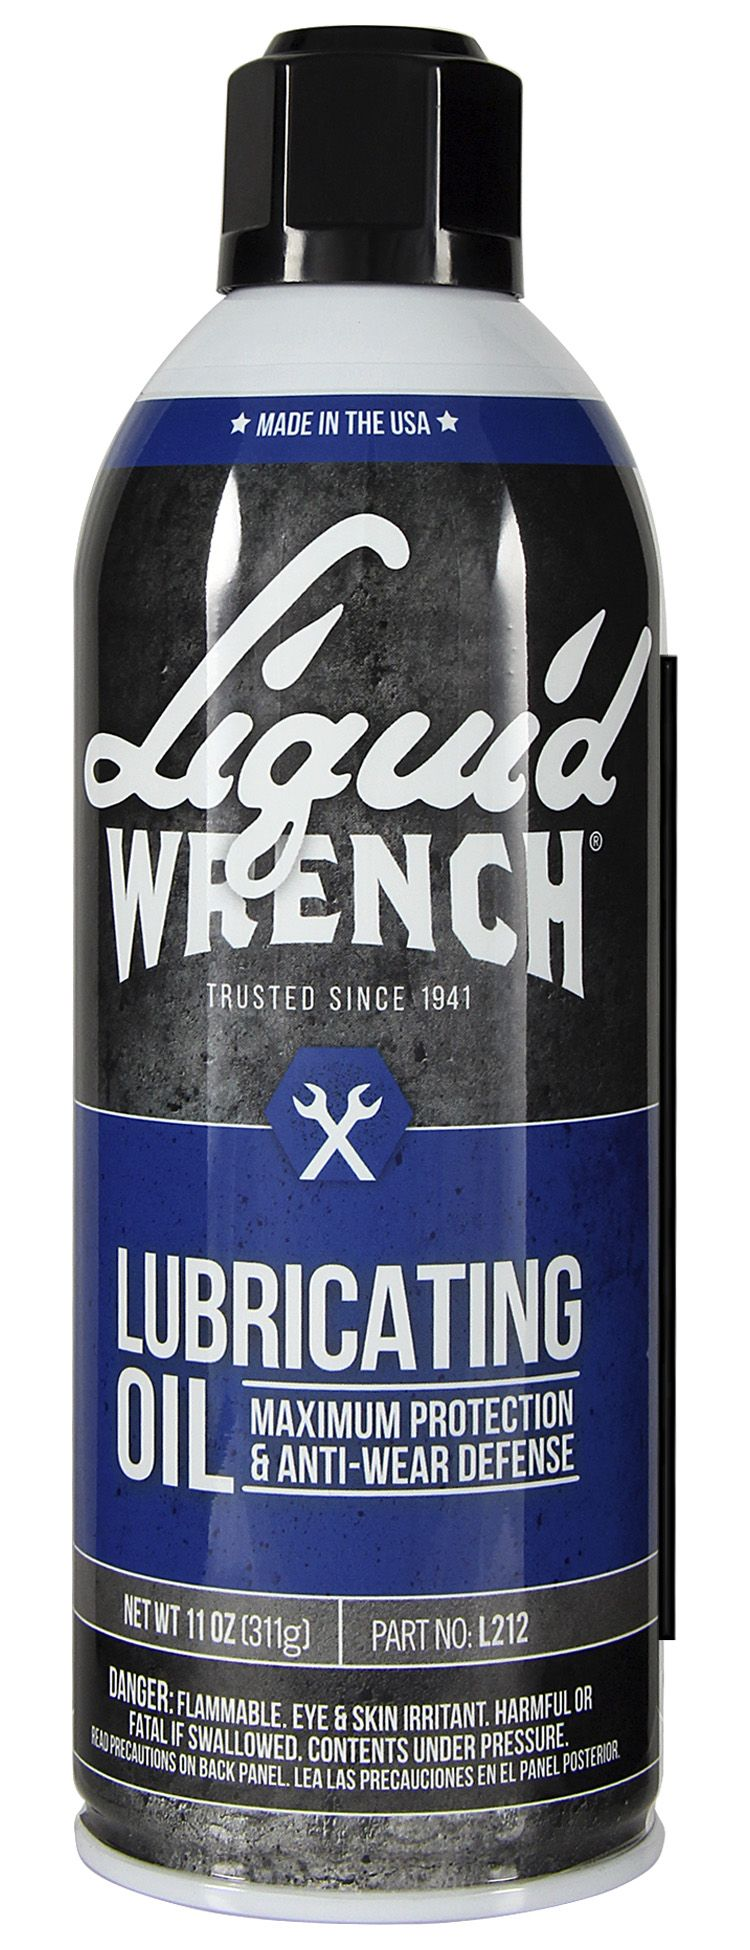 Lubricating Oil Image